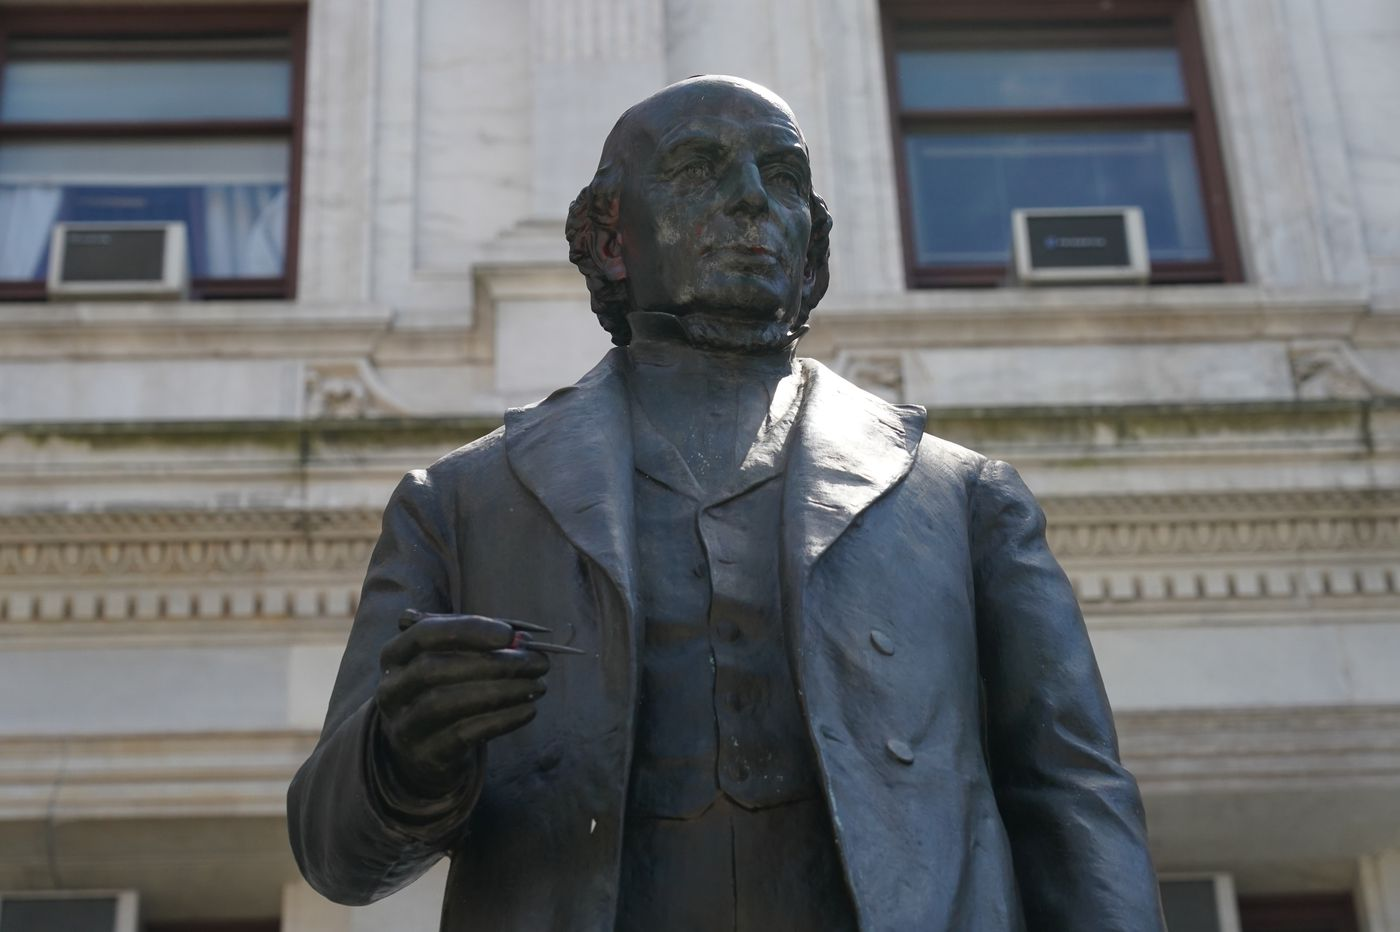 Photos of defaced statue of Philly abolitionist Matthias Baldwin go viral